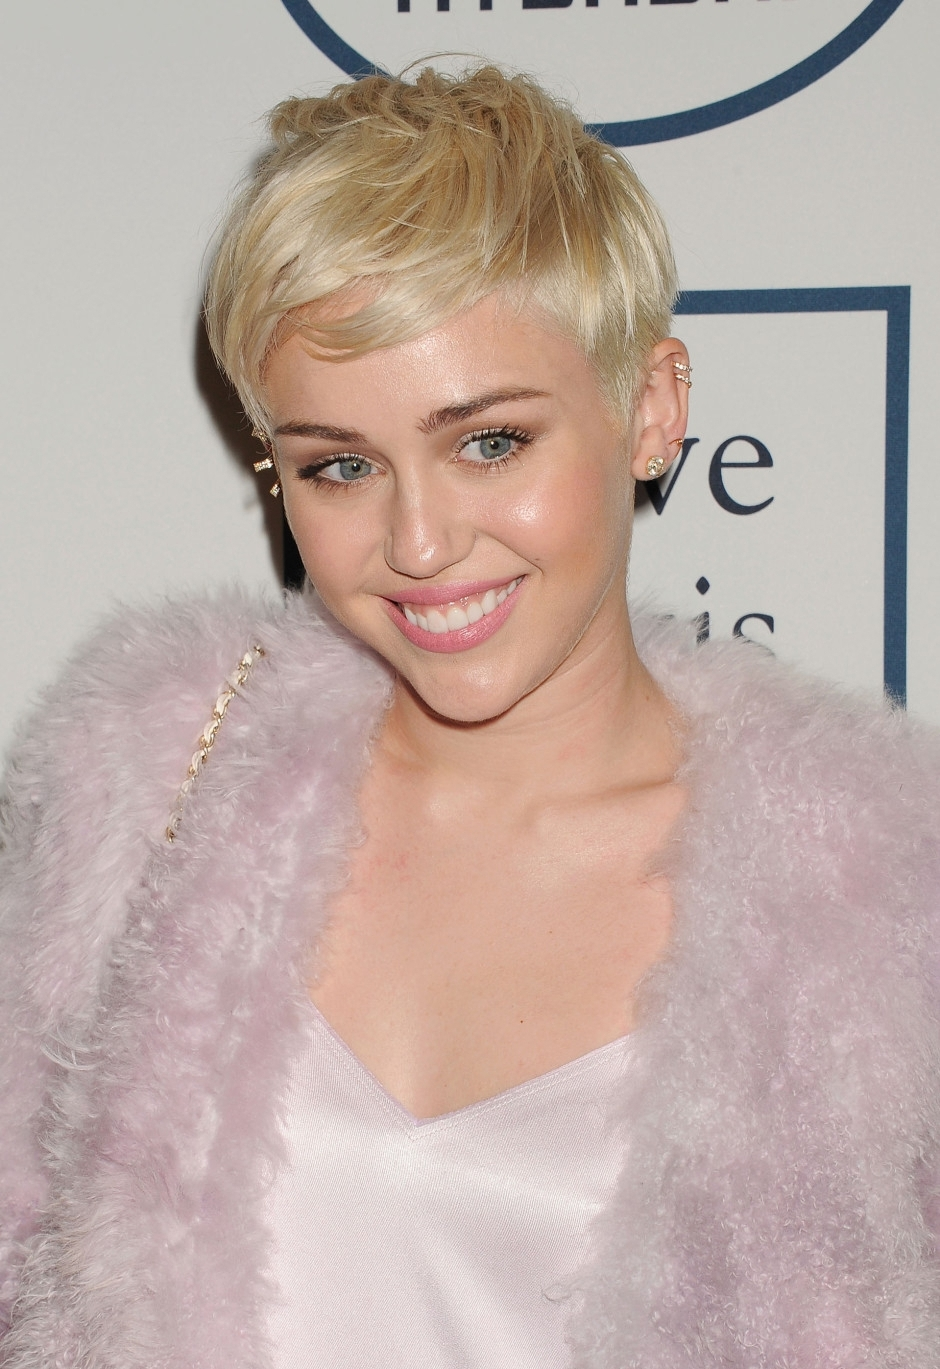 Haircuts For Short Hair With Bangs For Heart Shaped Face The Right For Most Recent Pixie Hairstyles For Heart Shaped Faces (View 5 of 15)